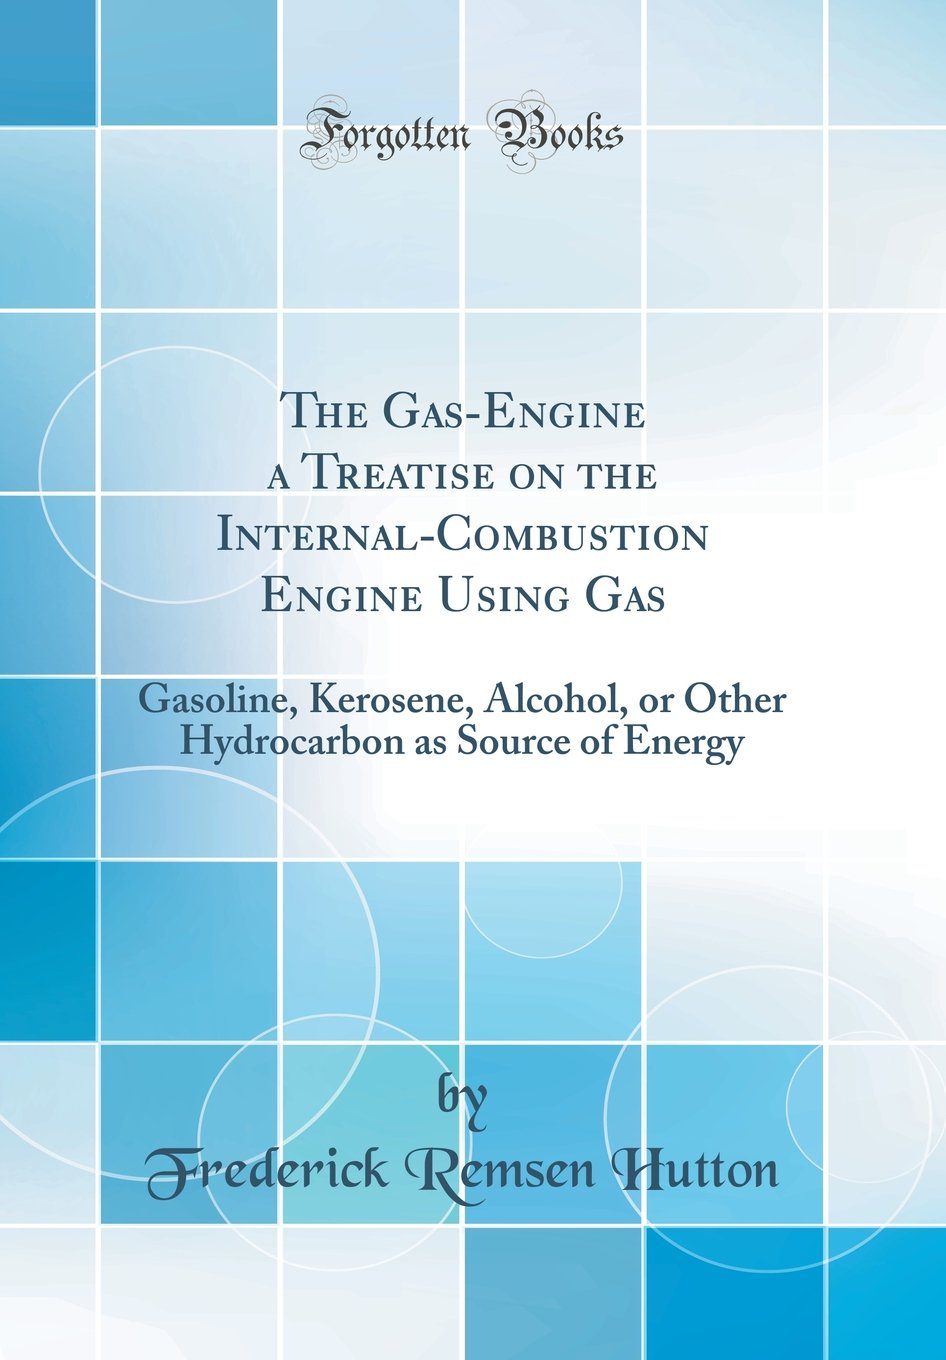 The Gas-Engine a Treatise on the Internal-Combustion Engine Using Gas: Gasoline, Kerosene, Alcohol, or Other Hydrocarbon as Source of Energy (Classic Reprint) pdf